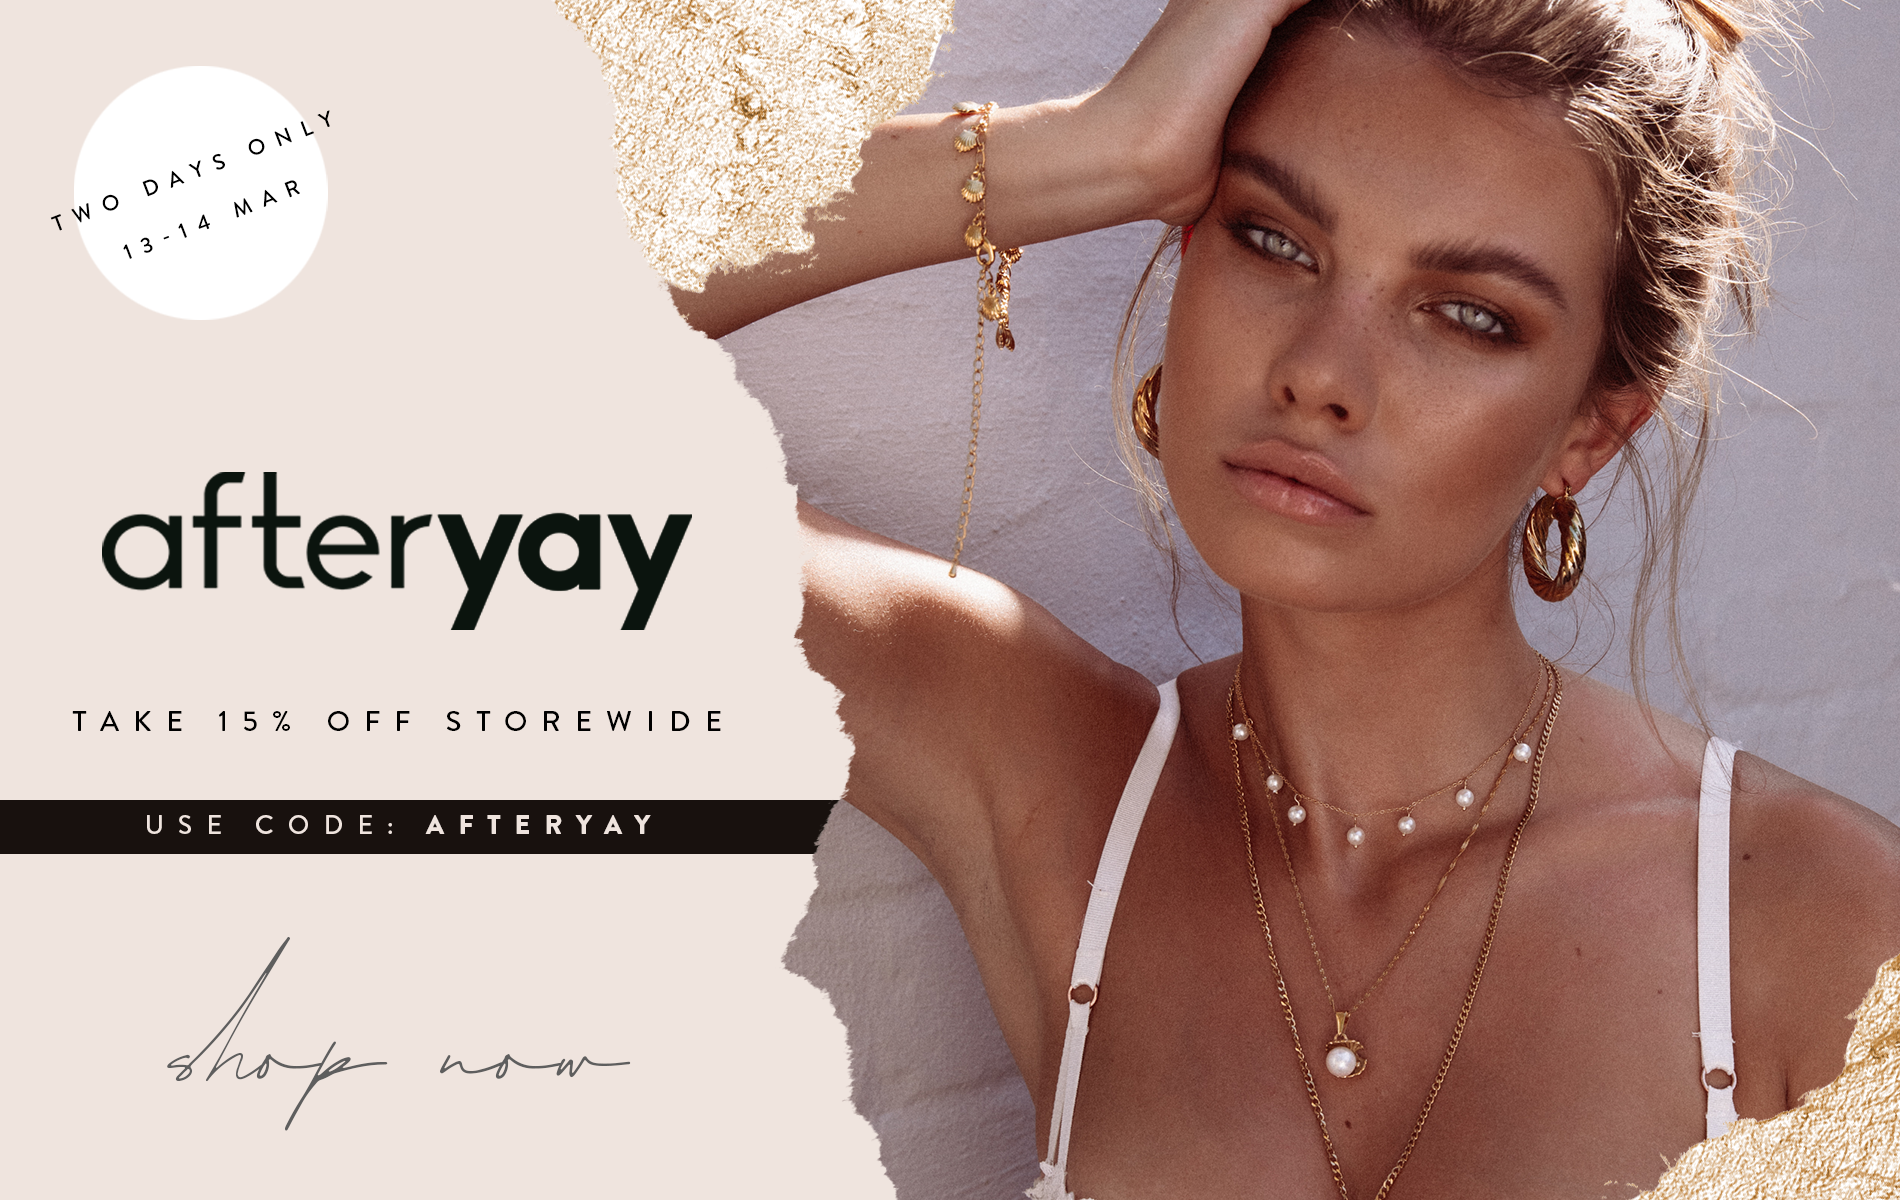 AFTERYAY DAY SALE PROMO WEB BANNER.png